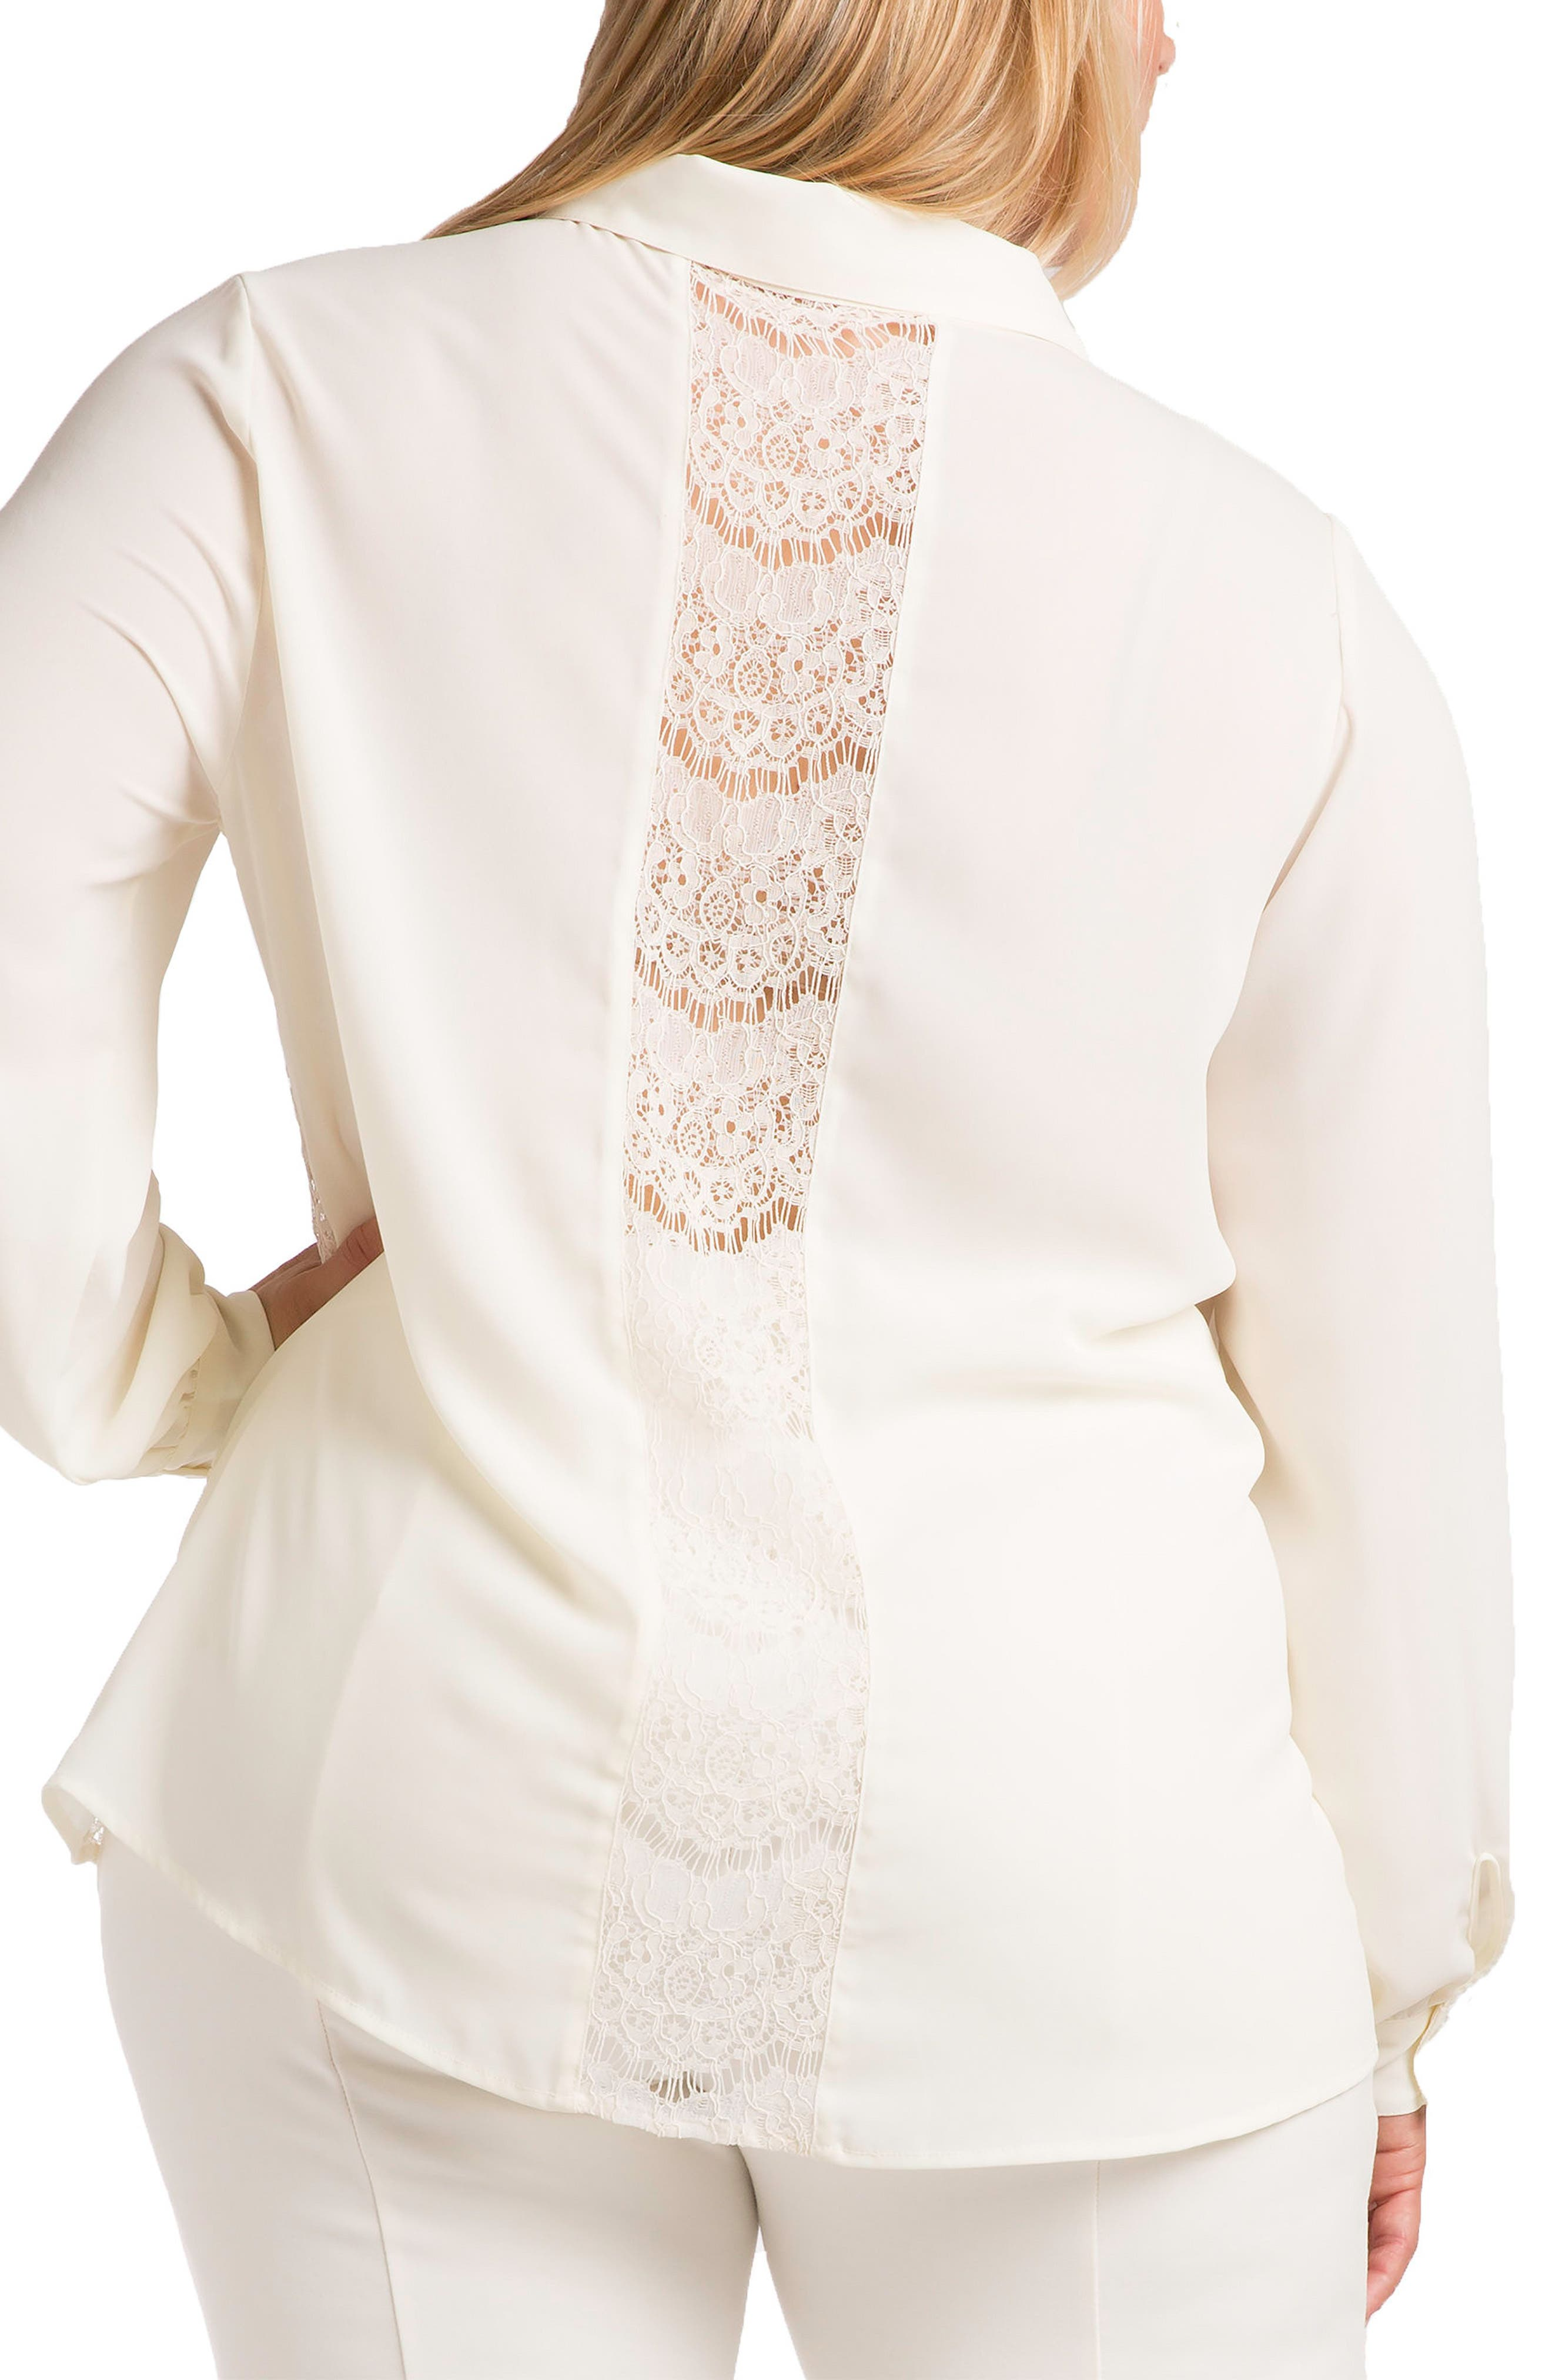 STANDARDS & PRACTICES, Coco Lace Front Shirt, Alternate thumbnail 2, color, WHITE